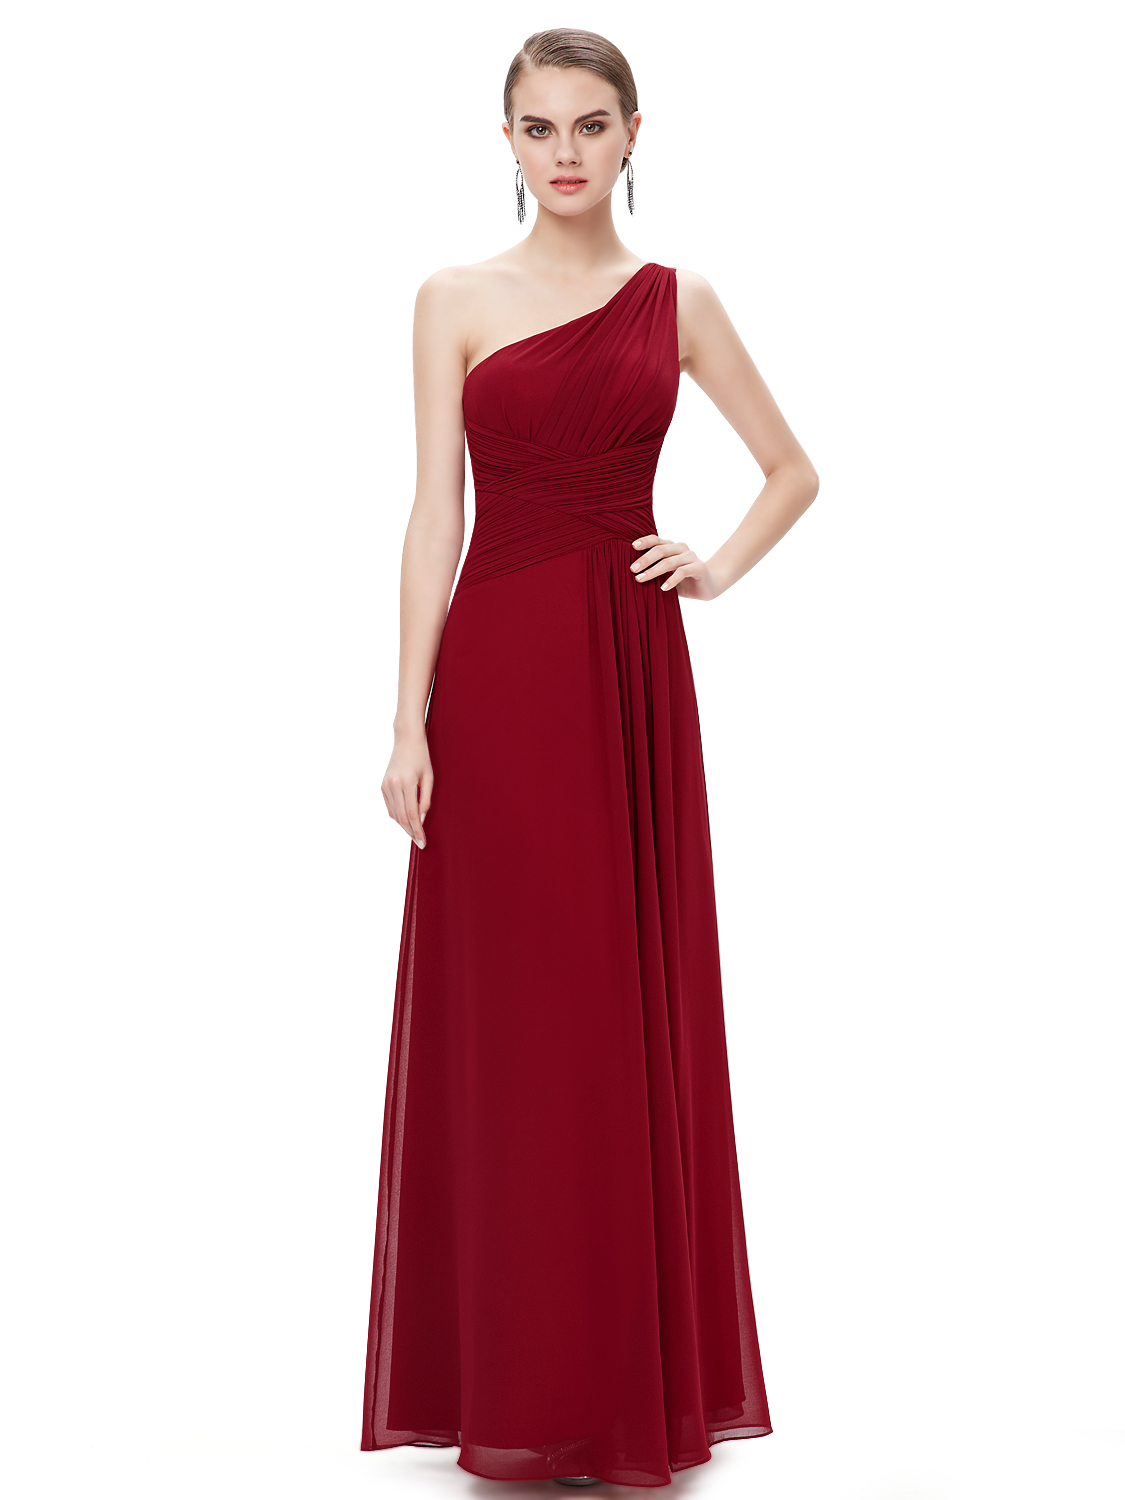 Fashion One Shoulder Bridesmaid Dresses Homecoming Party Gown 09905 ...